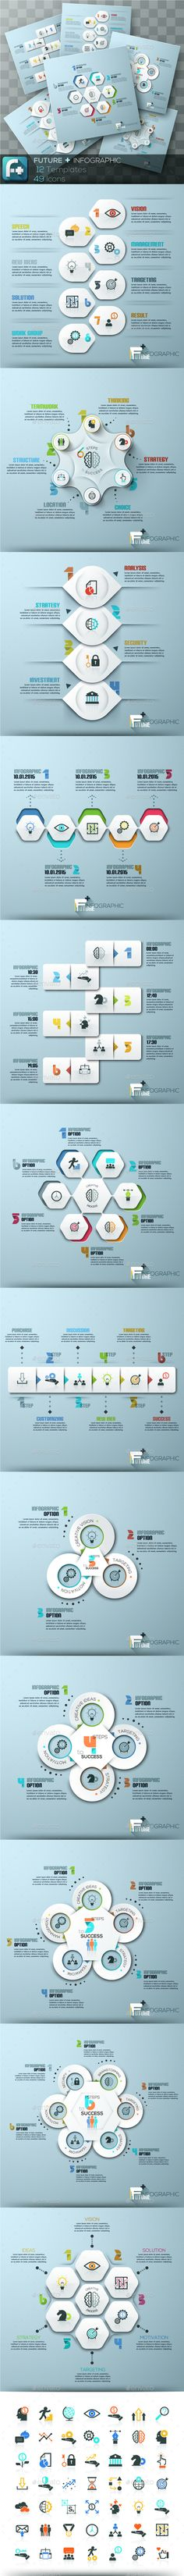 ''Future + '' Infographics. Set Templates PSD, Vector EPS, AI Illustrator. Download here: http://graphicriver.net/item/future-infographics-set-1/16009108?ref=ksioks